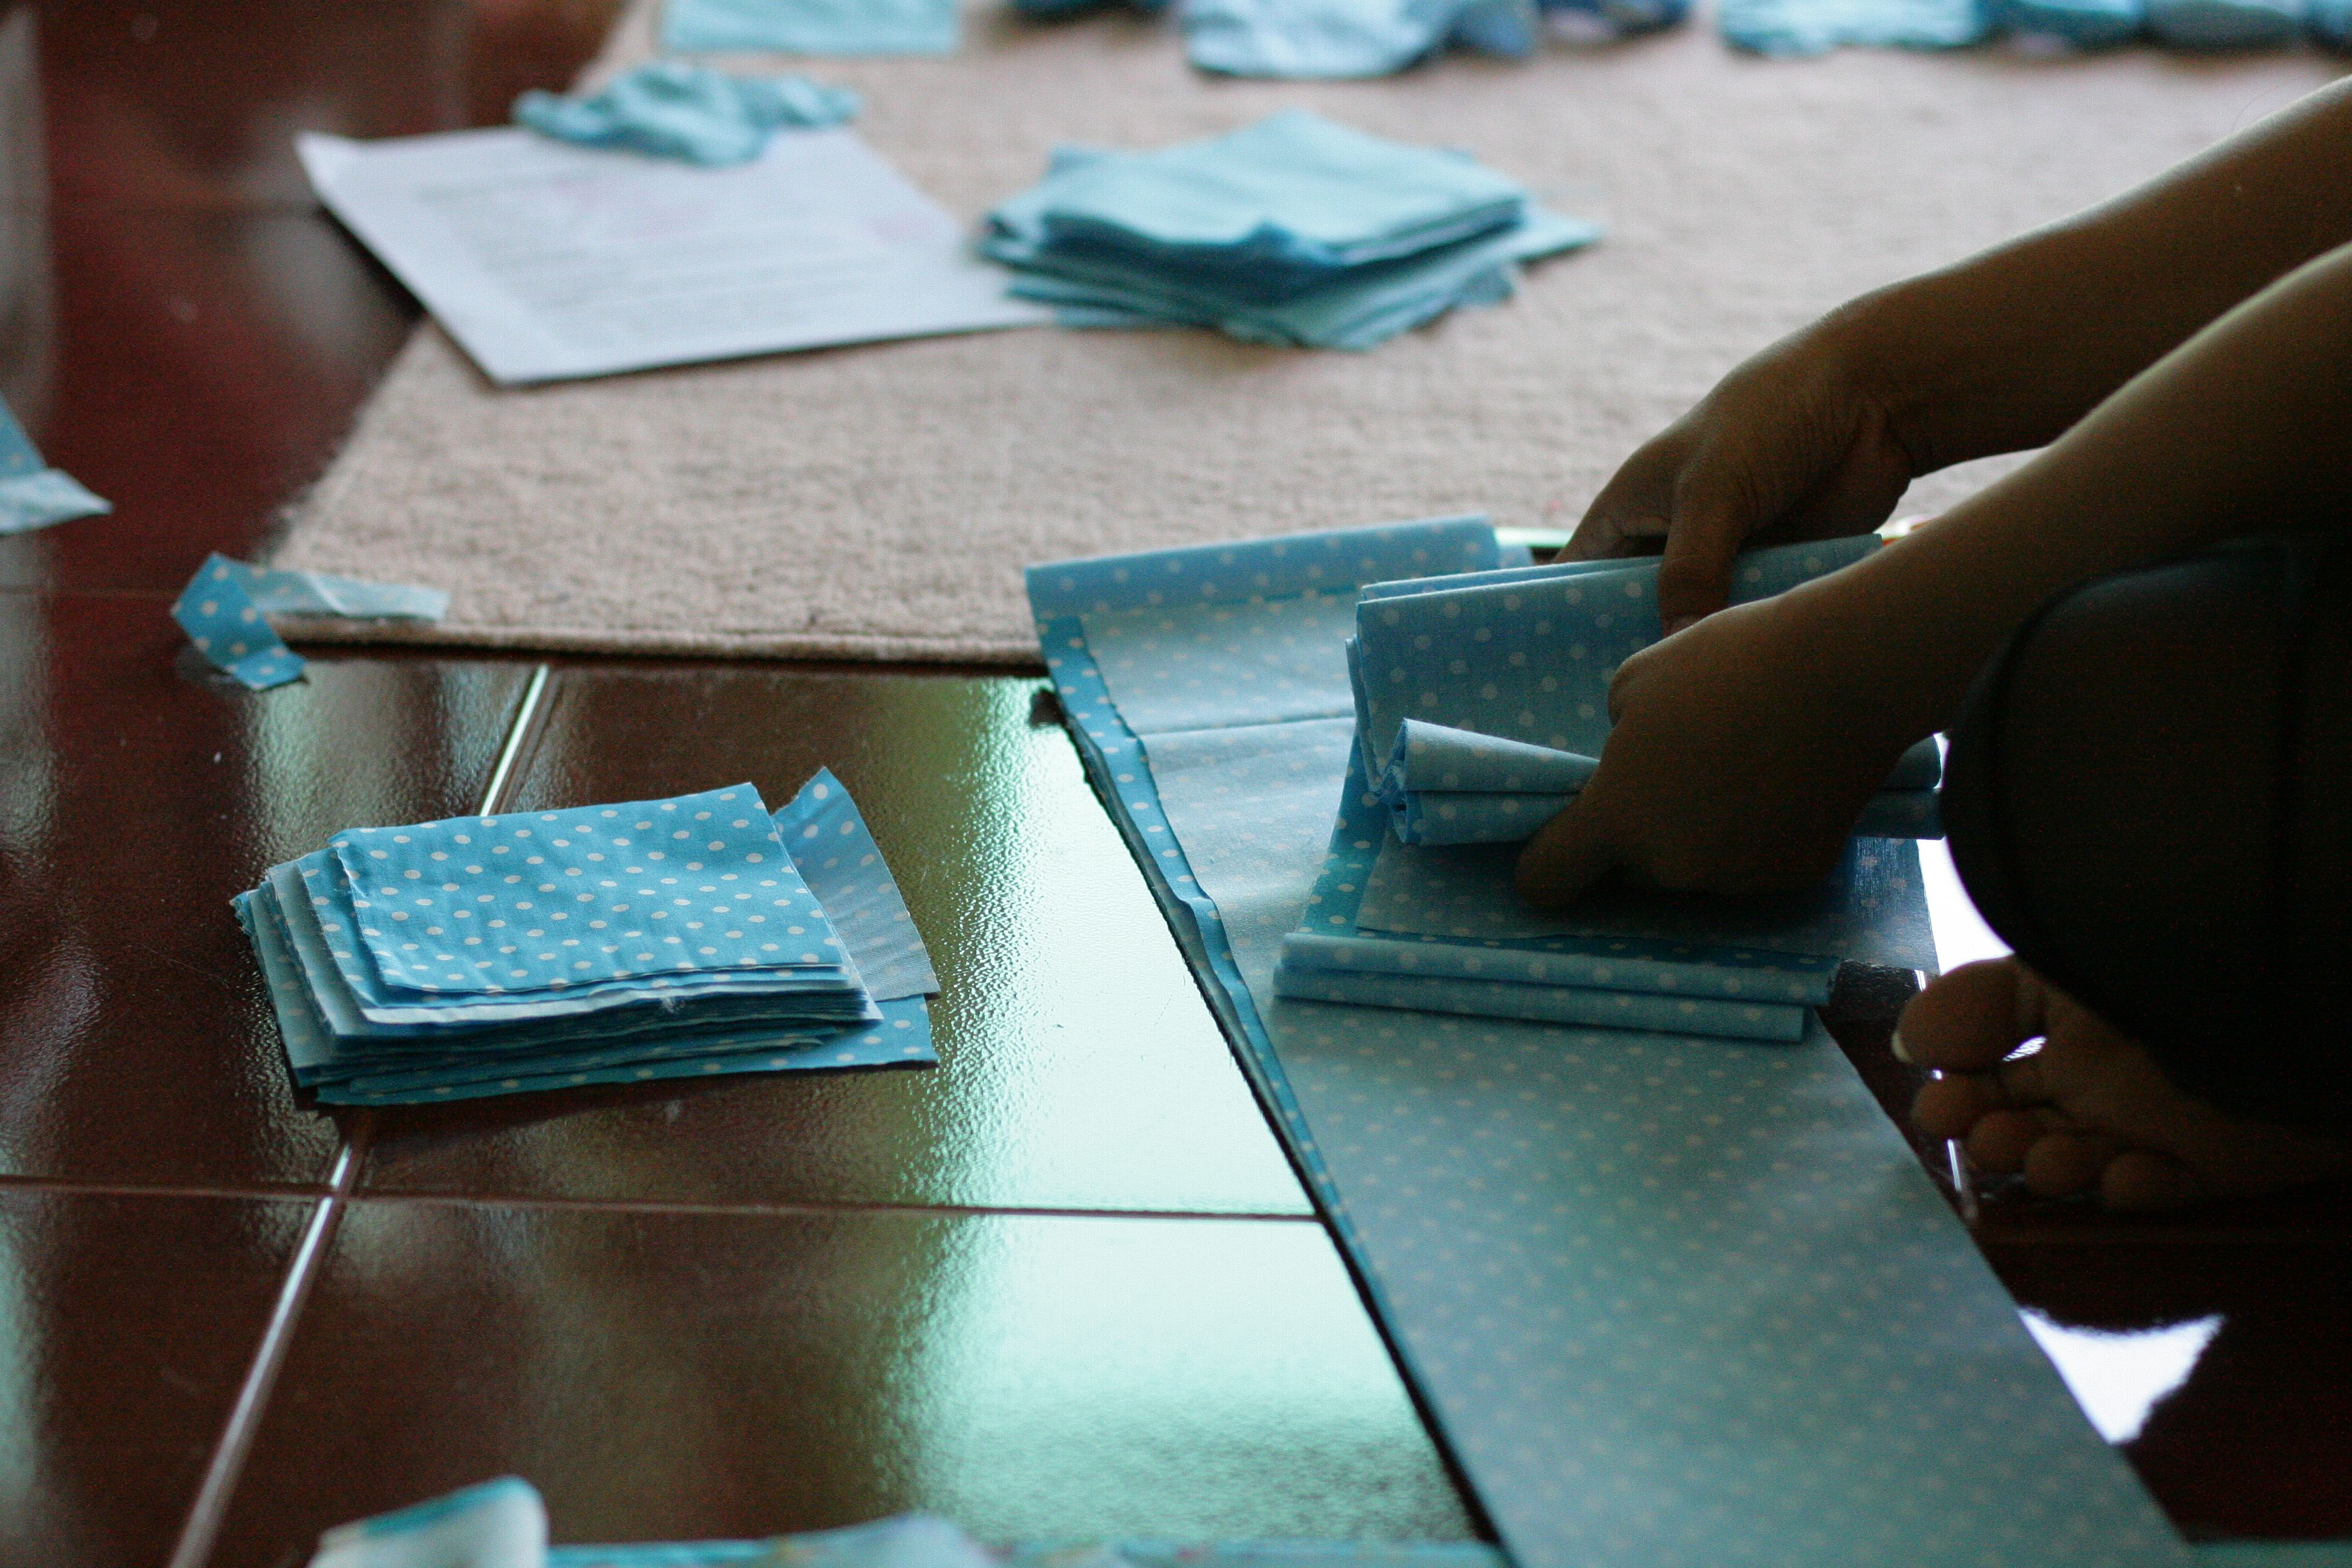 Cutting the fabric for sewing the letters for the personalized garlands #fairtrade #Thailand #handmade